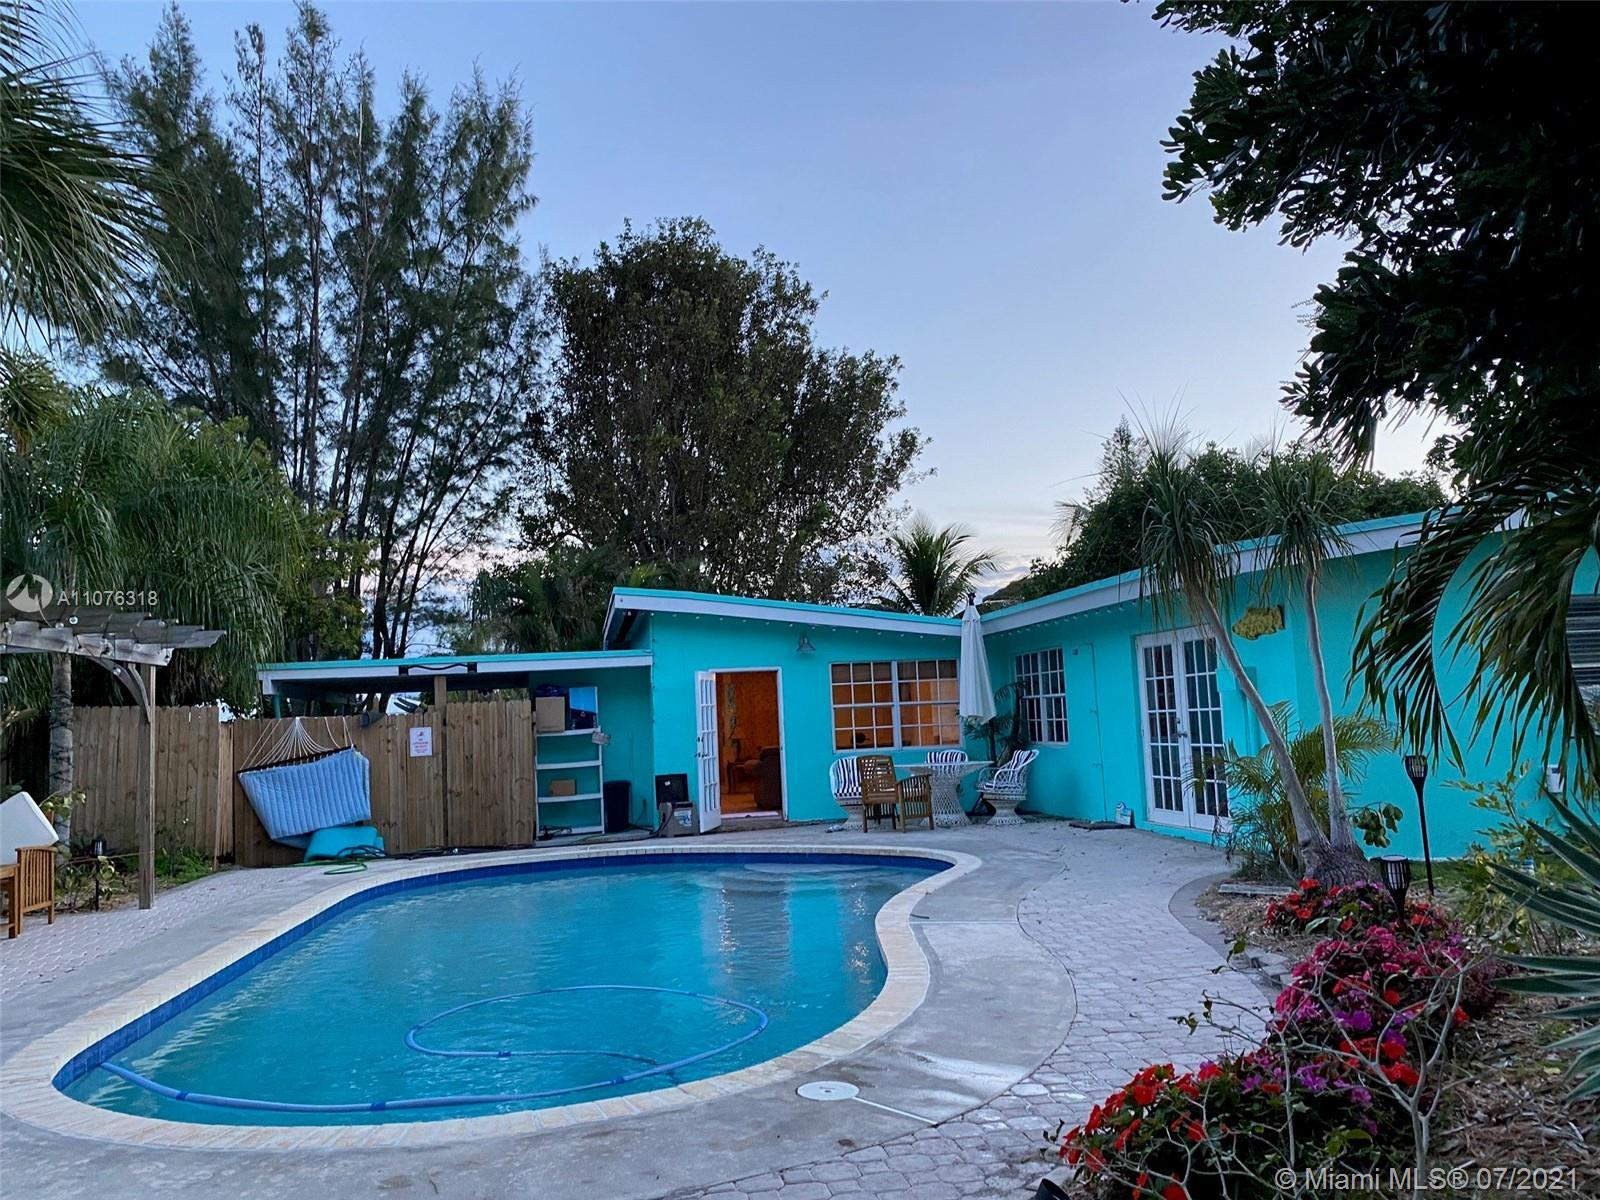 Remarkable home in up and coming area of Boynton Beach, nice quiet street with great neighbors. This